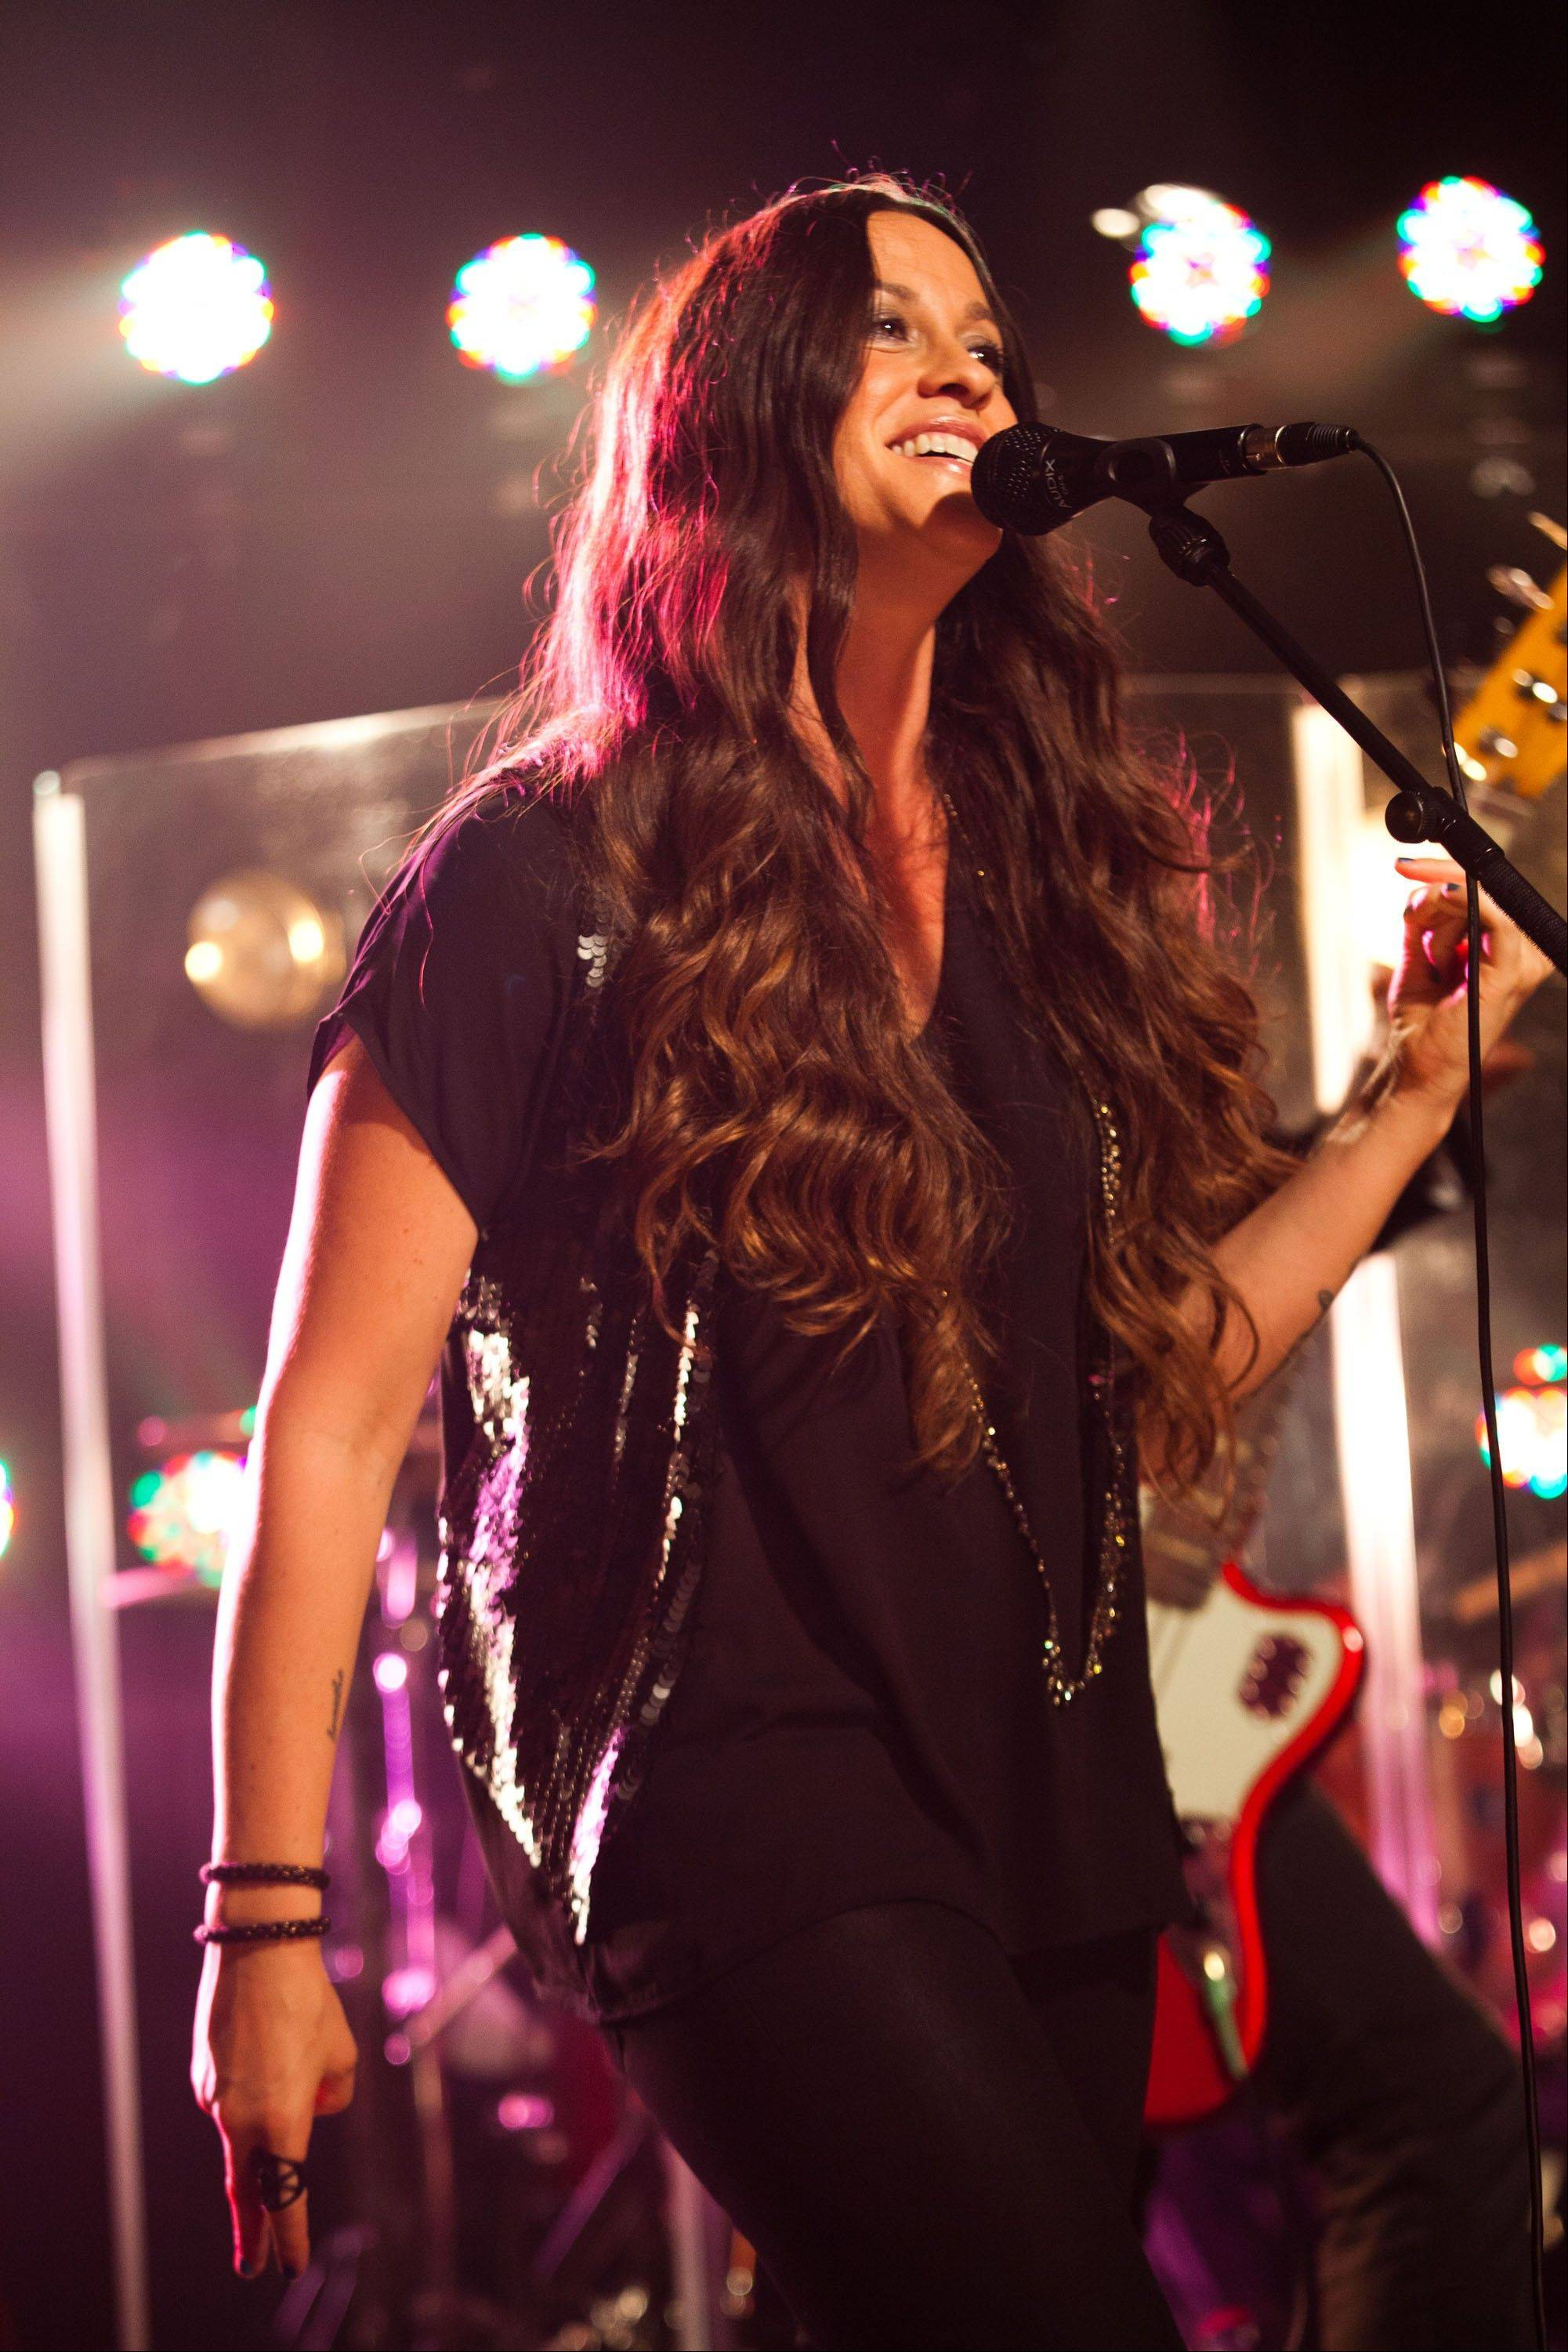 Singer-songwriter Alanis Morissette said Friday she hopes to adapt her 1995 breakthrough album �Jagged Little Pill� for the stage. Though no story is yet written, a workshop is planned for next year.